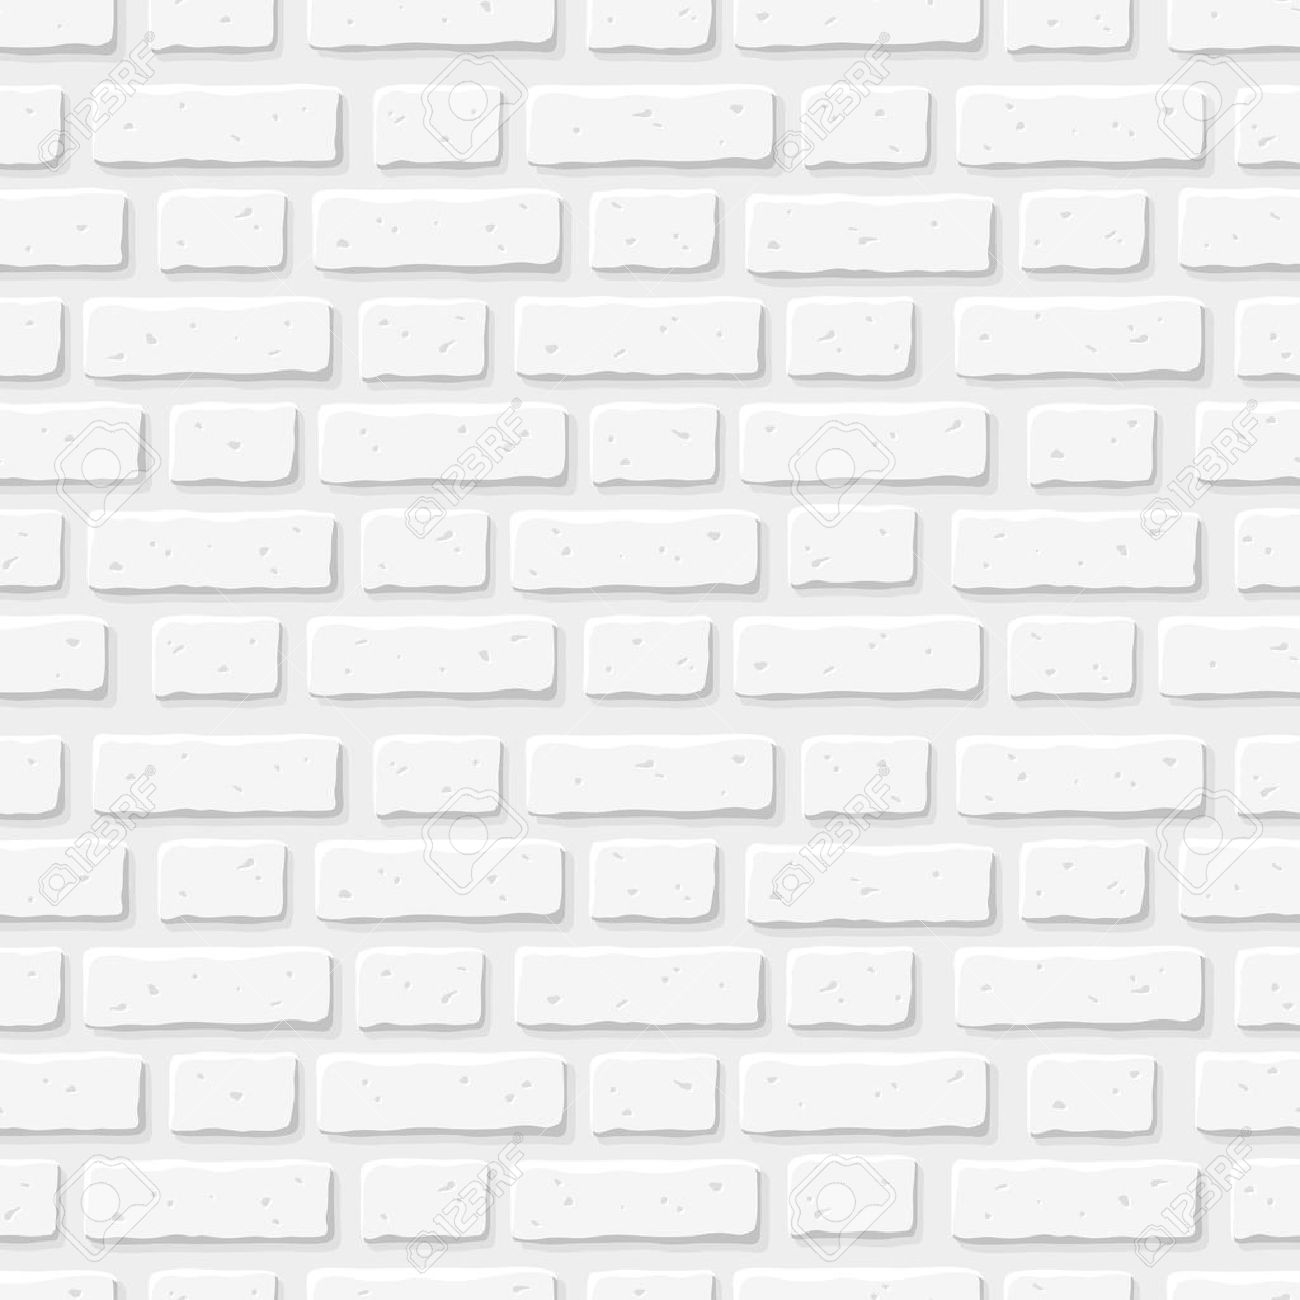 Pared De Ladrillo Blanco Textura Inconsutil Del Vector - Pared-ladrillo-blanco